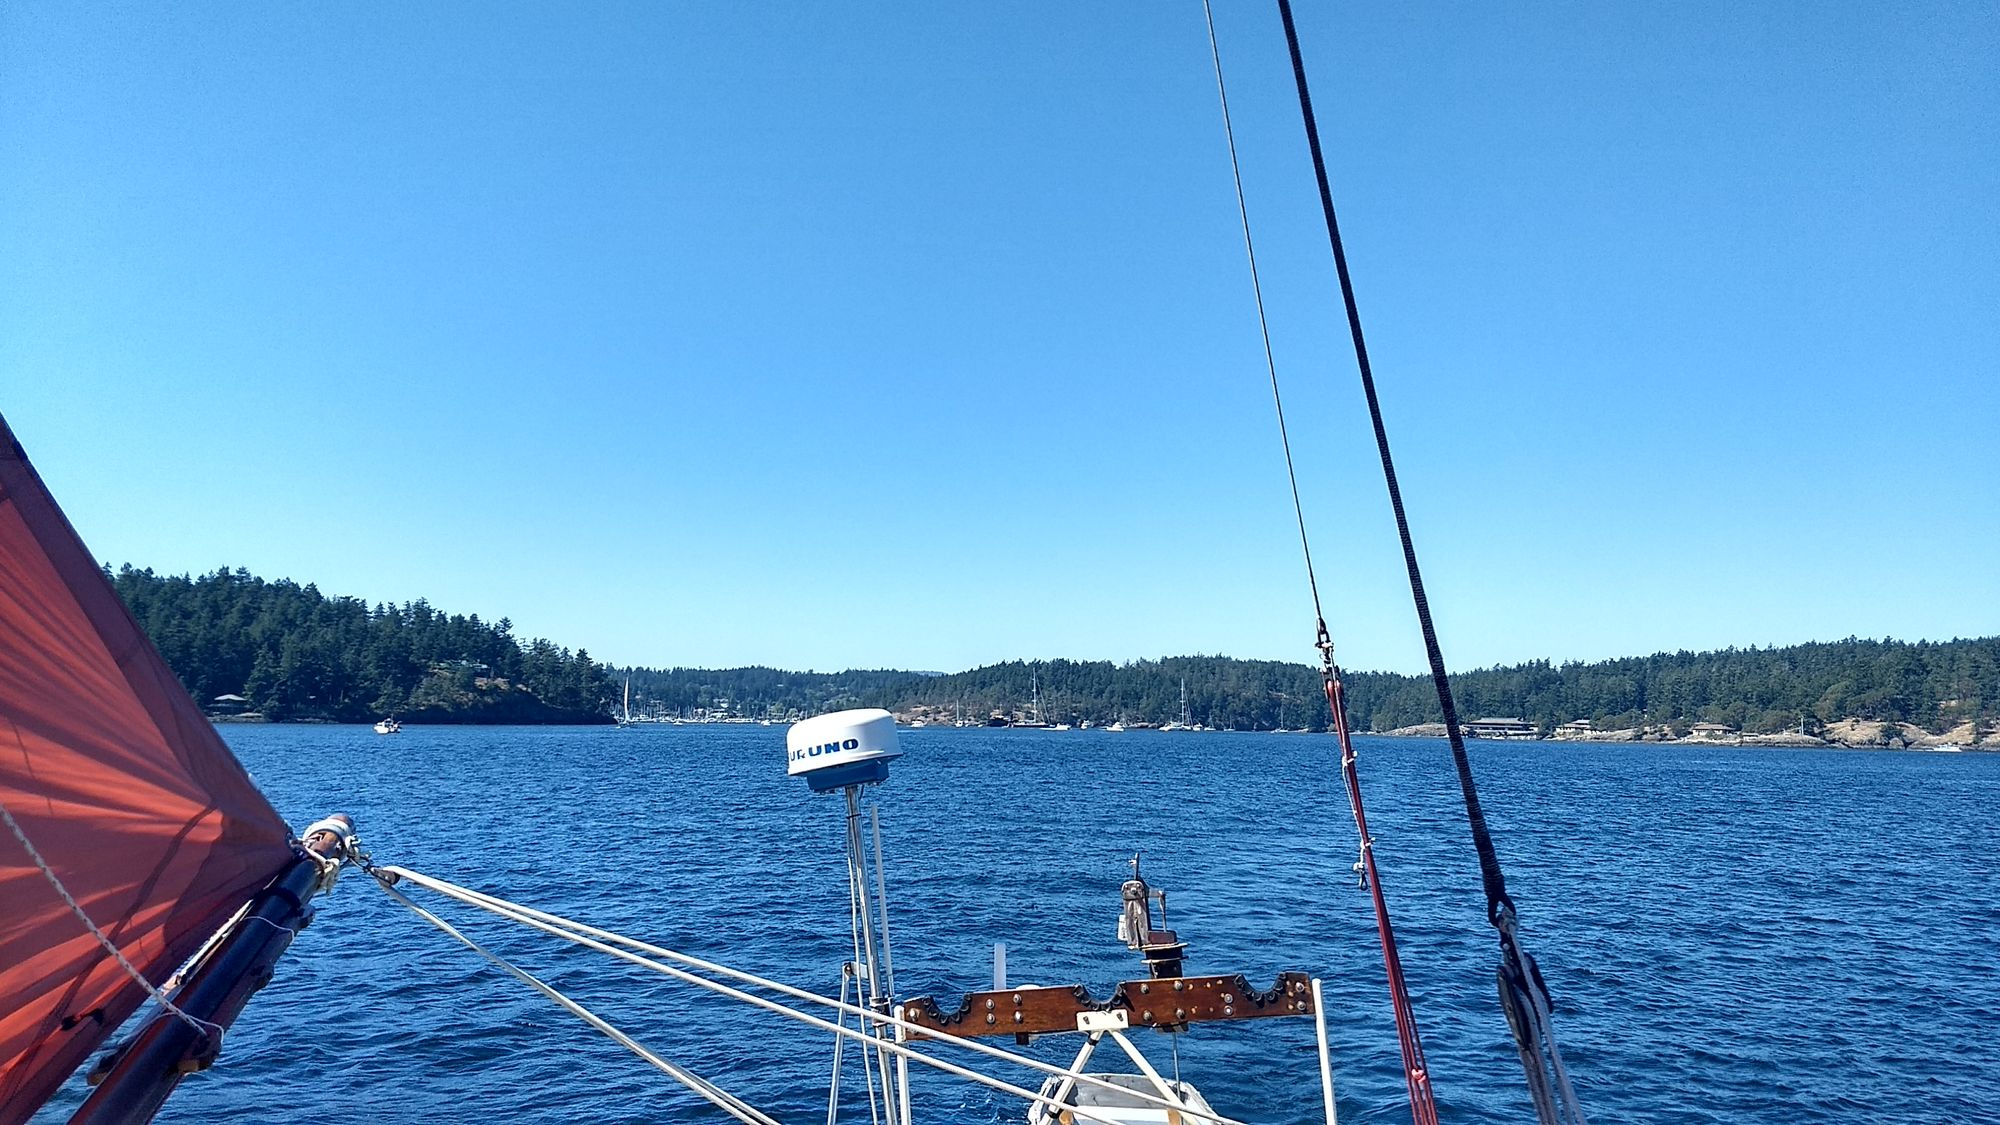 A view from the stern of a sailboat. An anchorage with many boats is visible in the distance.